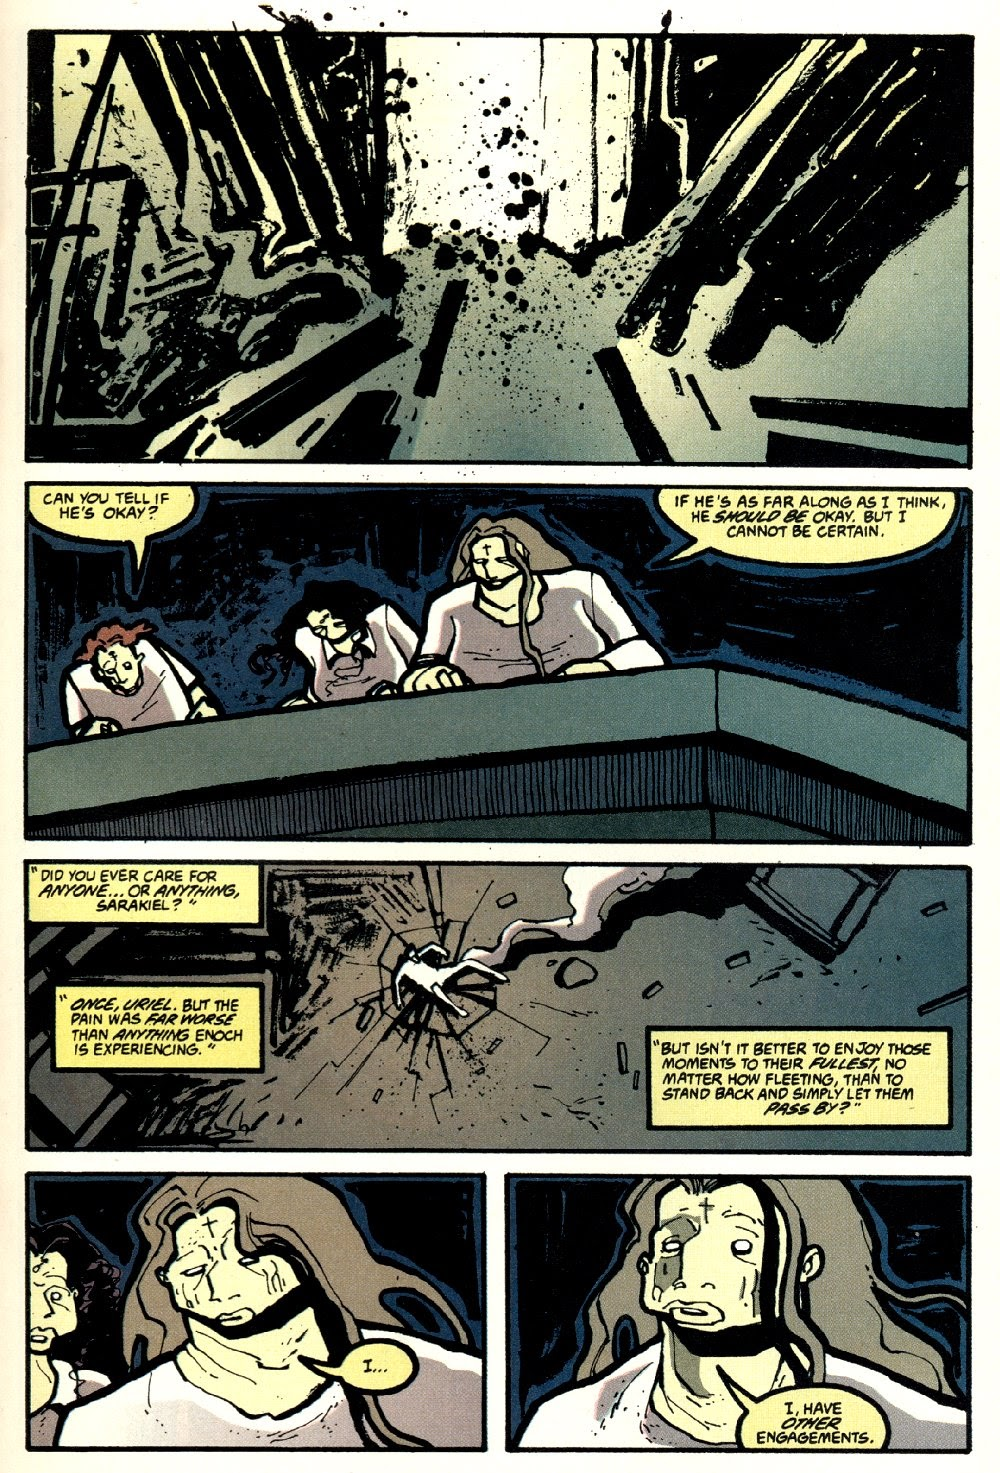 Read online Ted McKeever's Metropol comic -  Issue #8 - 13